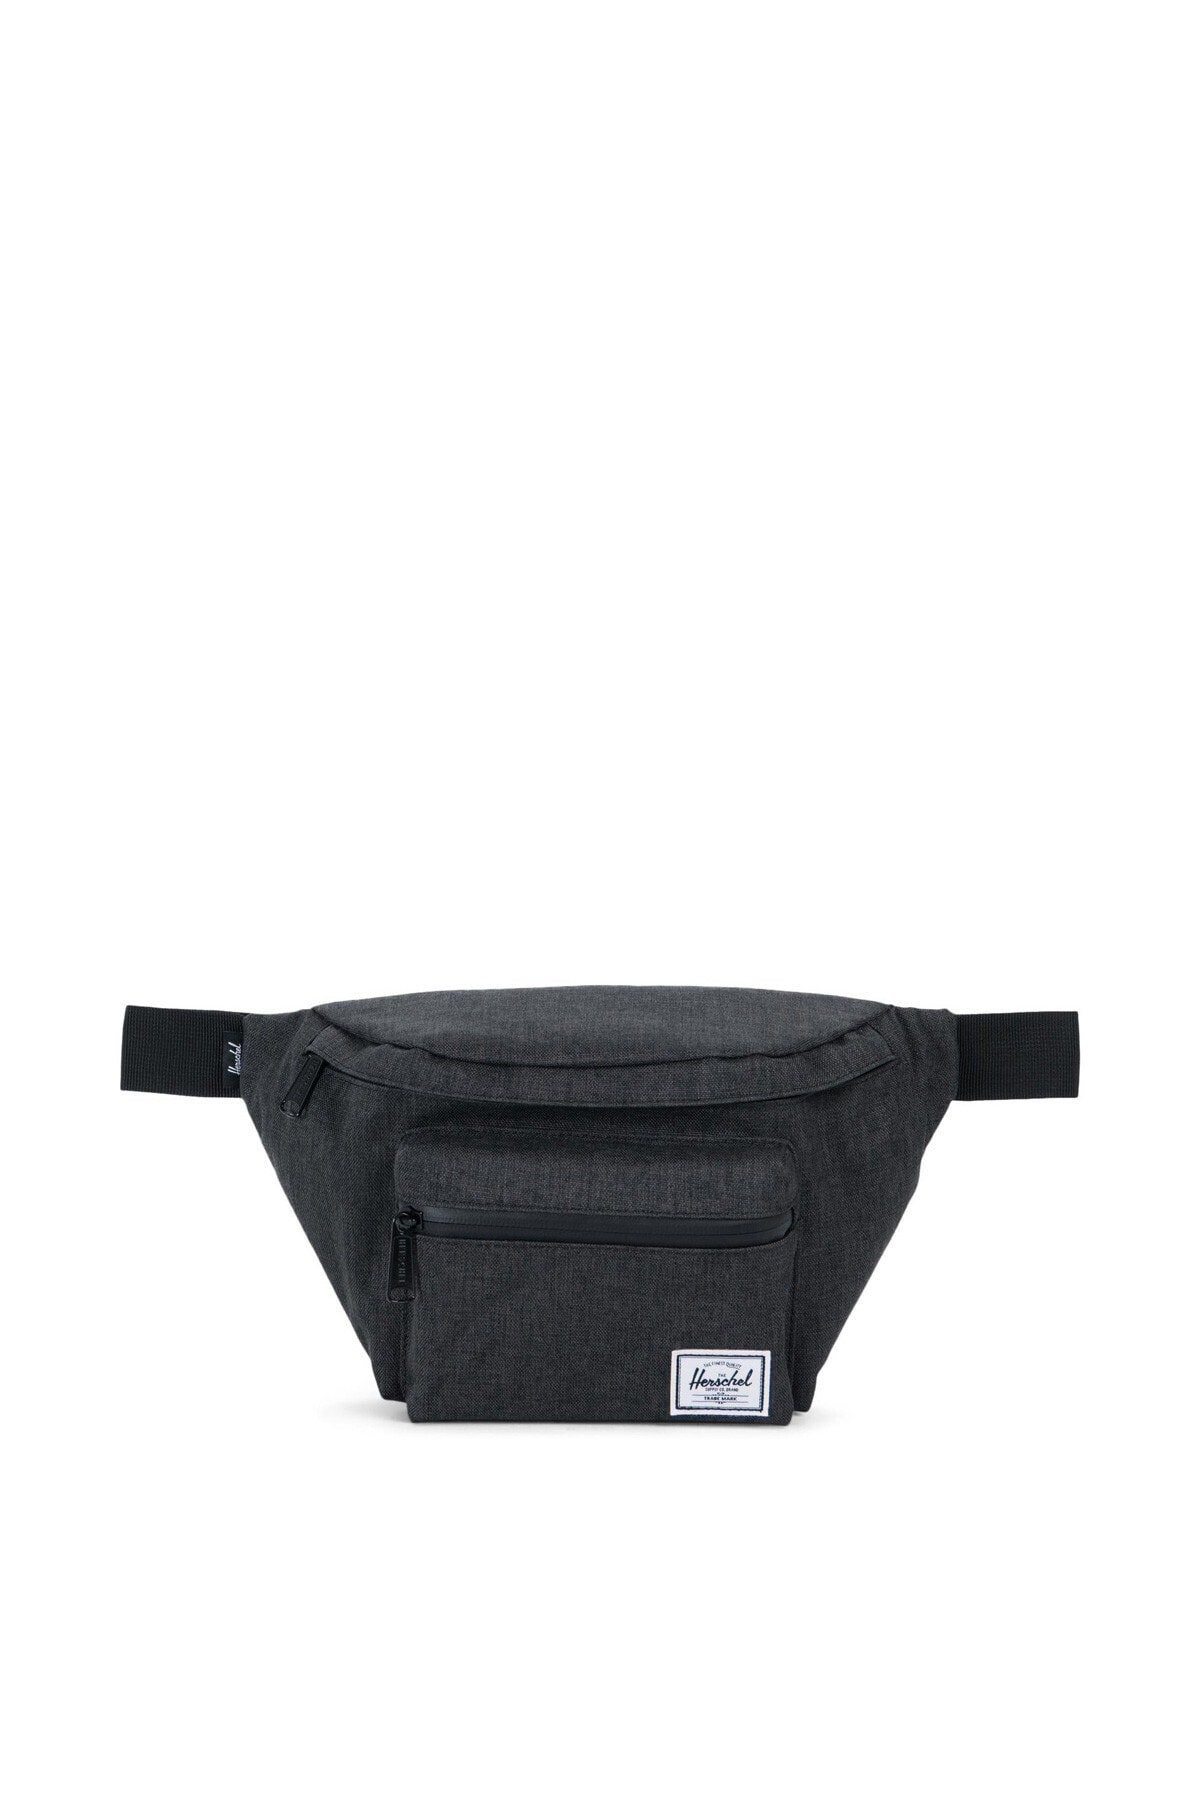 Herschel Supply Co. Black Crosshatch Bel Çantası 10017-02090-Os 1